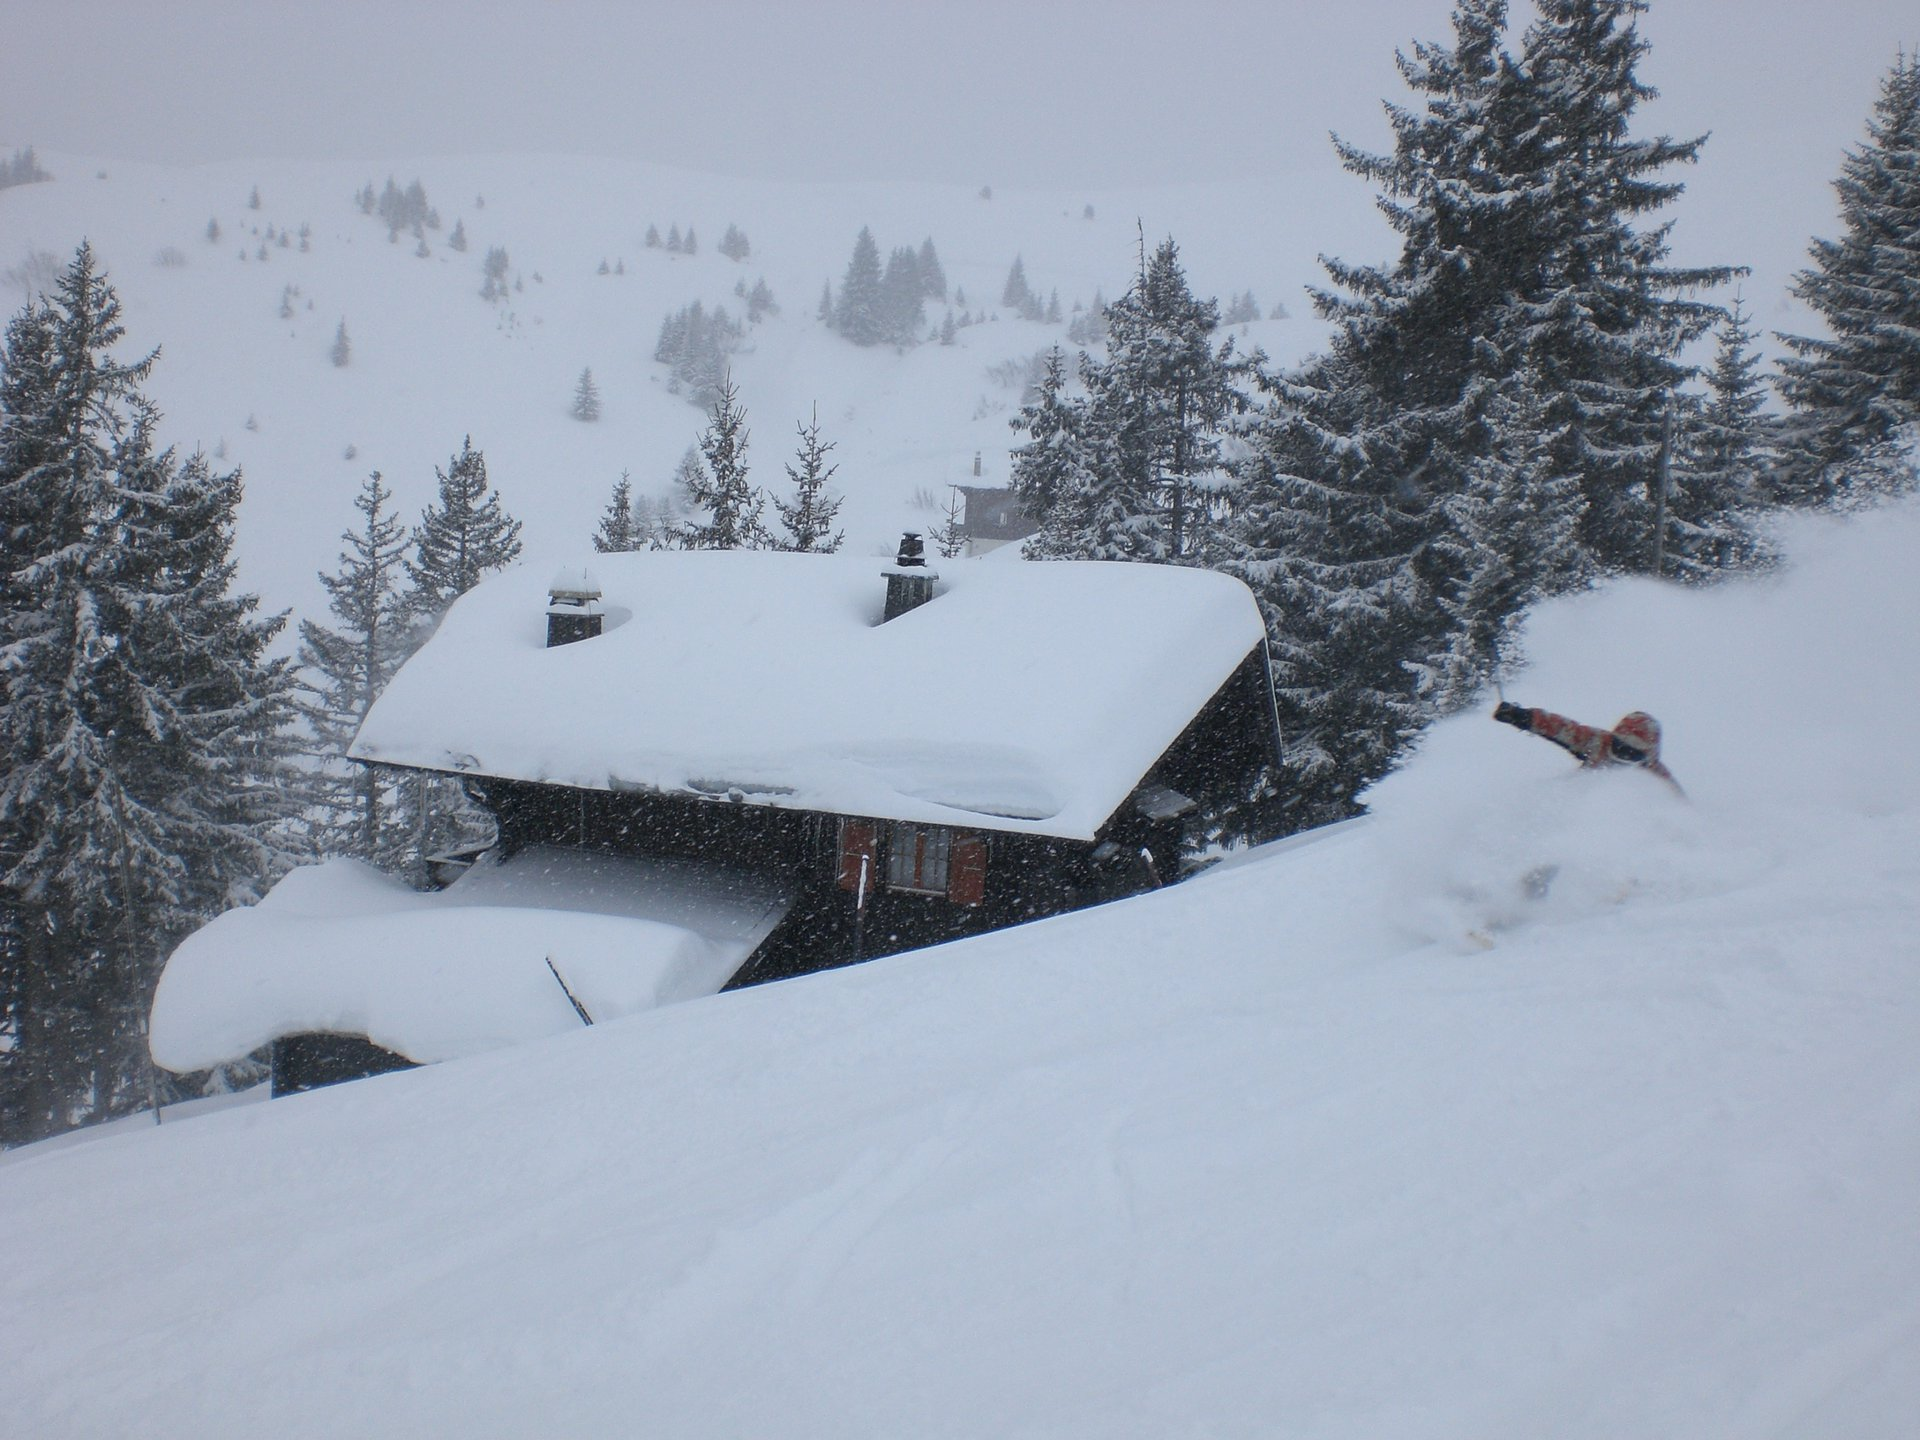 Pow in Switzerland